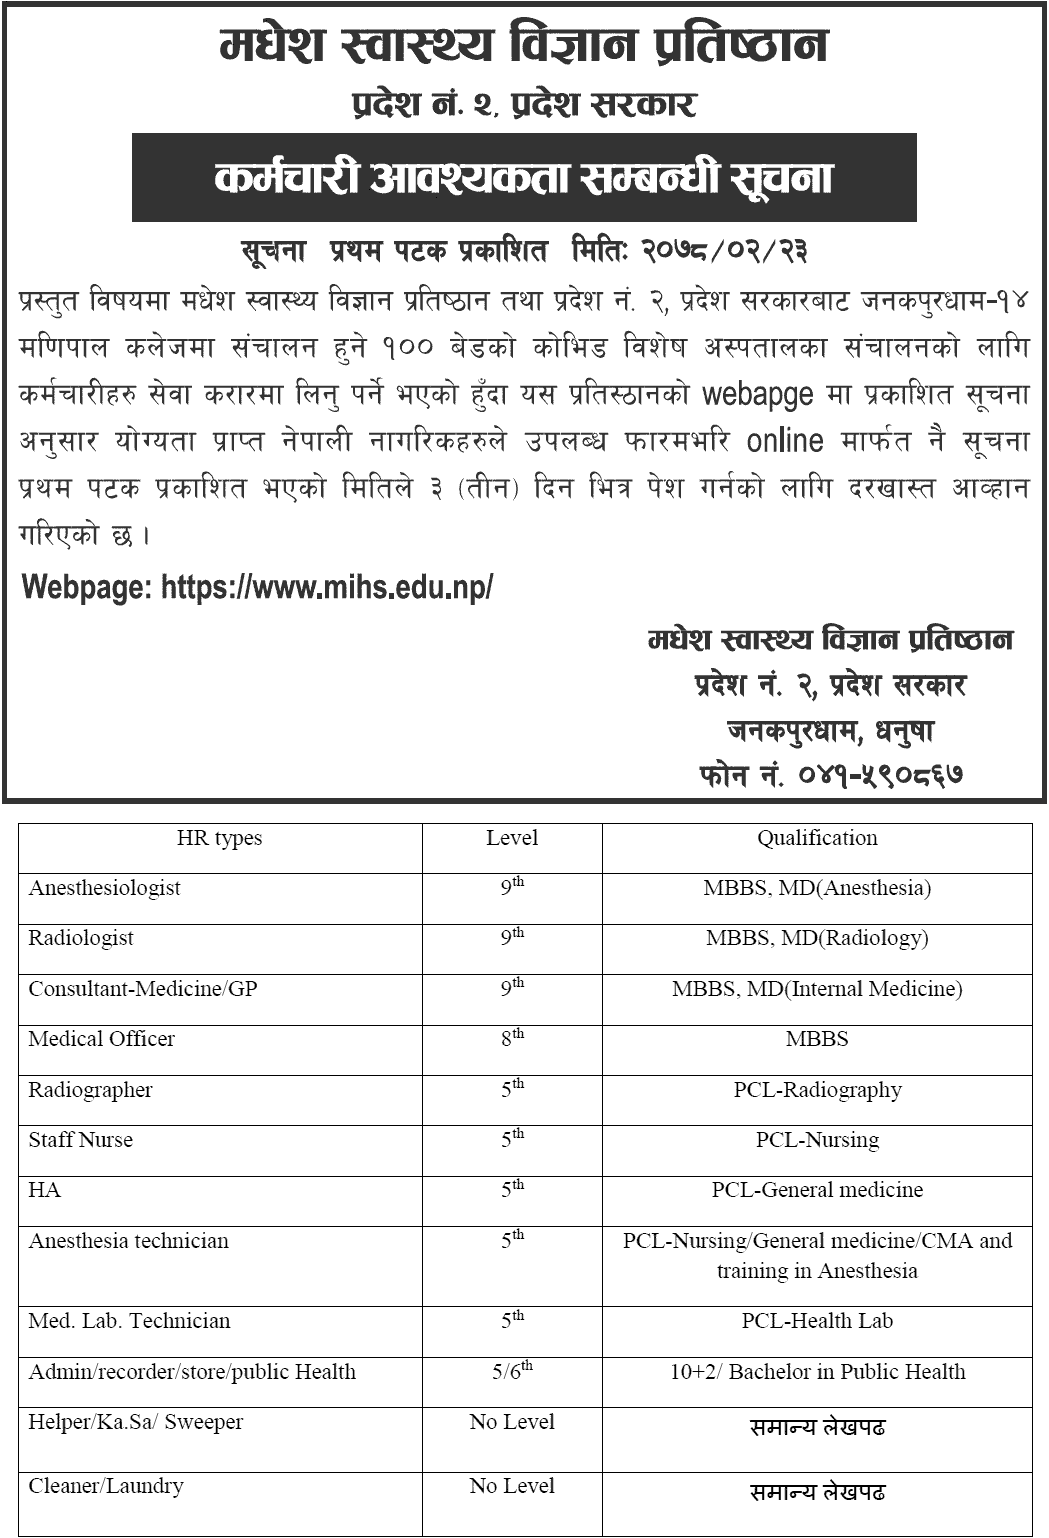 Madhesh Institute of Health Sciences (MIHS) Vacancy Announcement